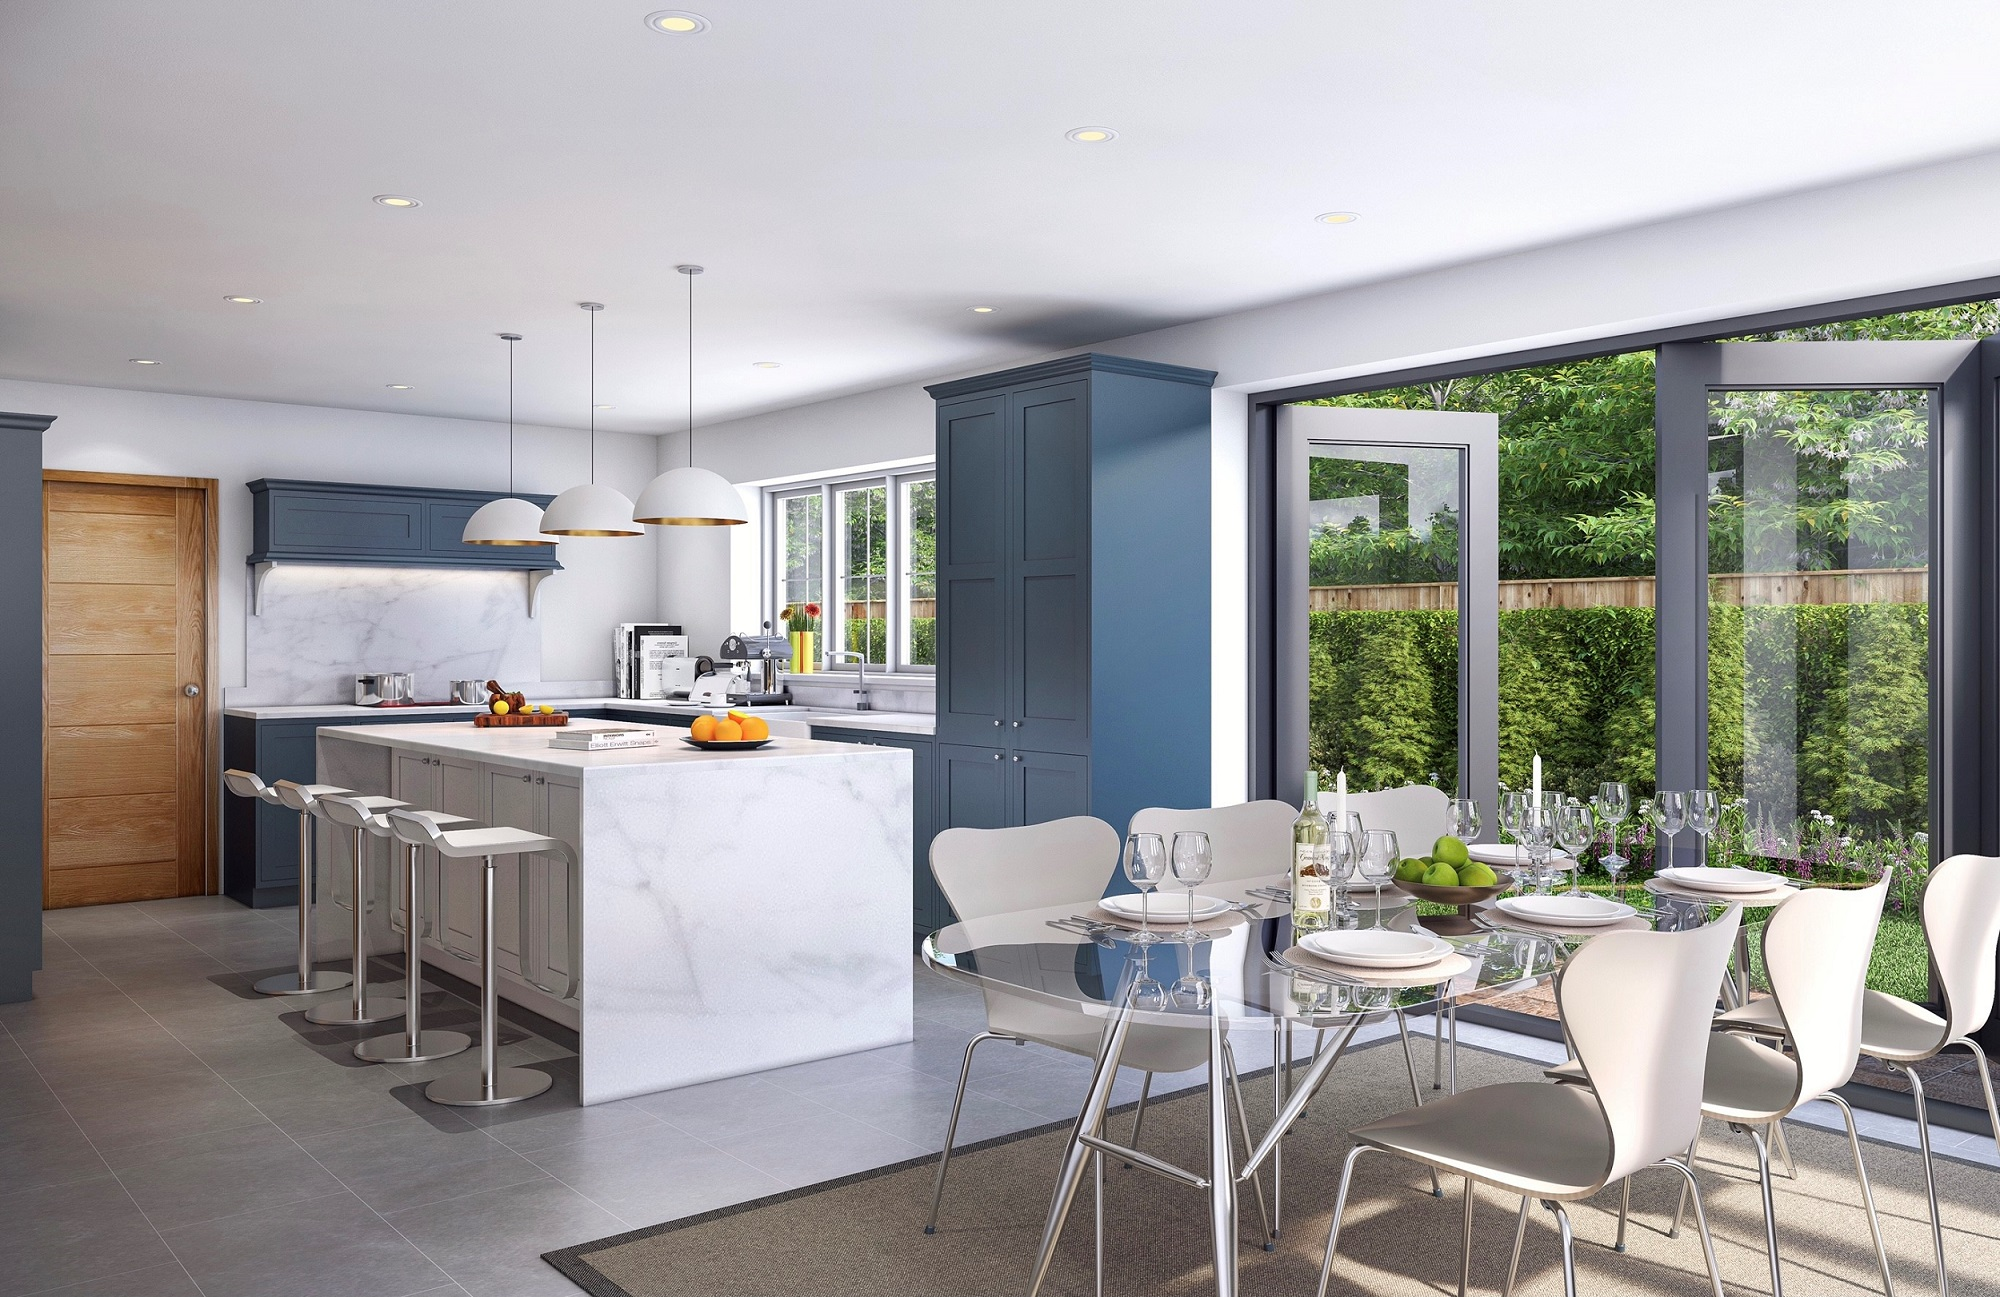 Six Reasons a Kitchen Is the Heart of Every Home